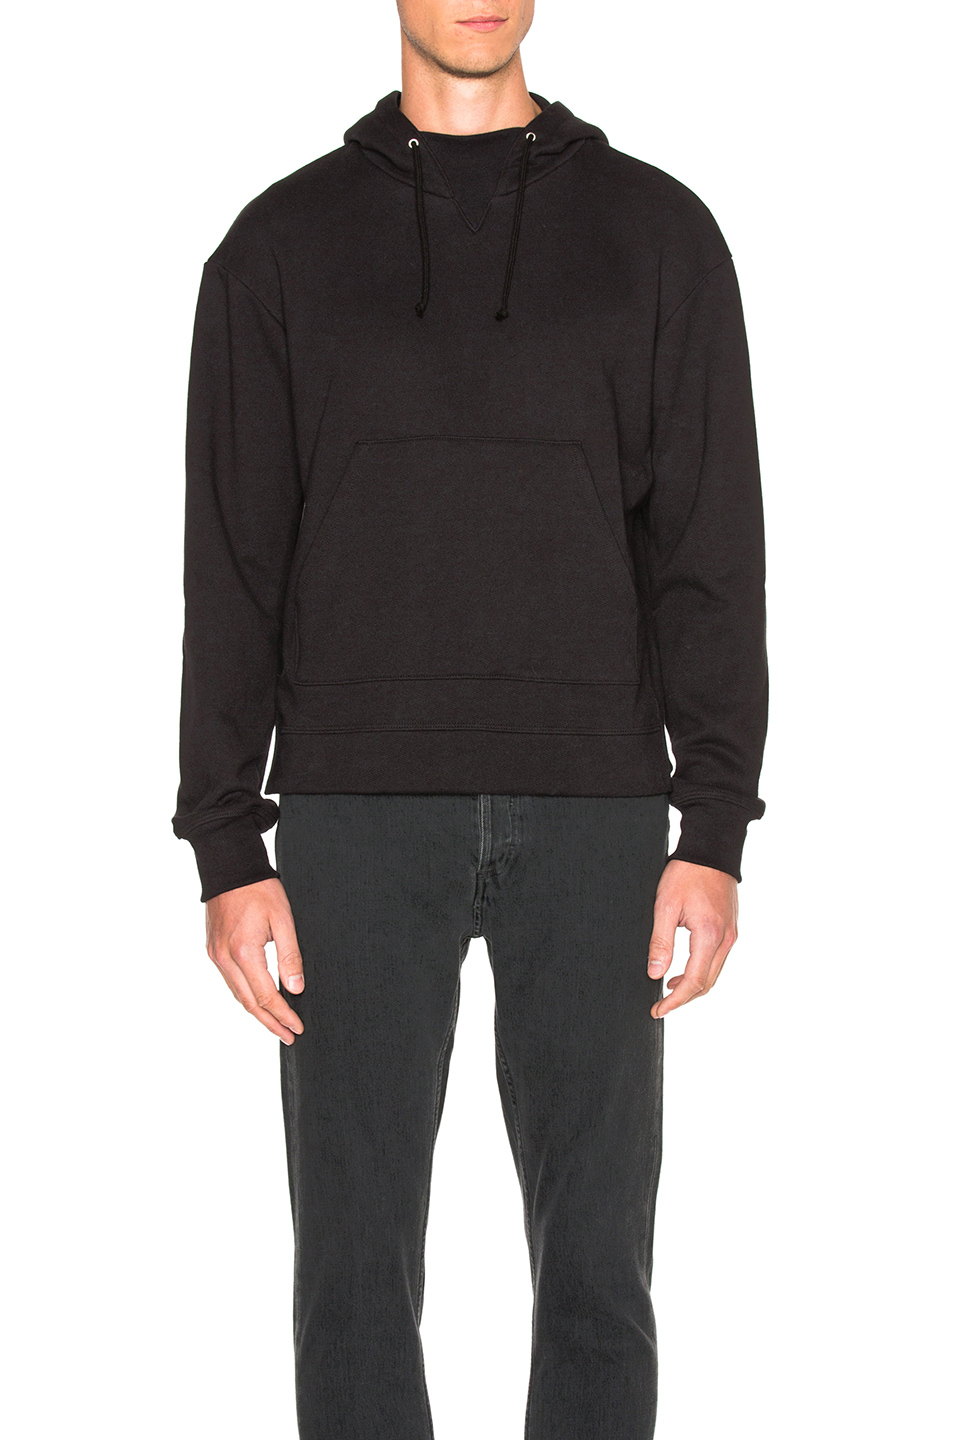 JOHN ELLIOTT Kake Mock Neck Pullover in Black